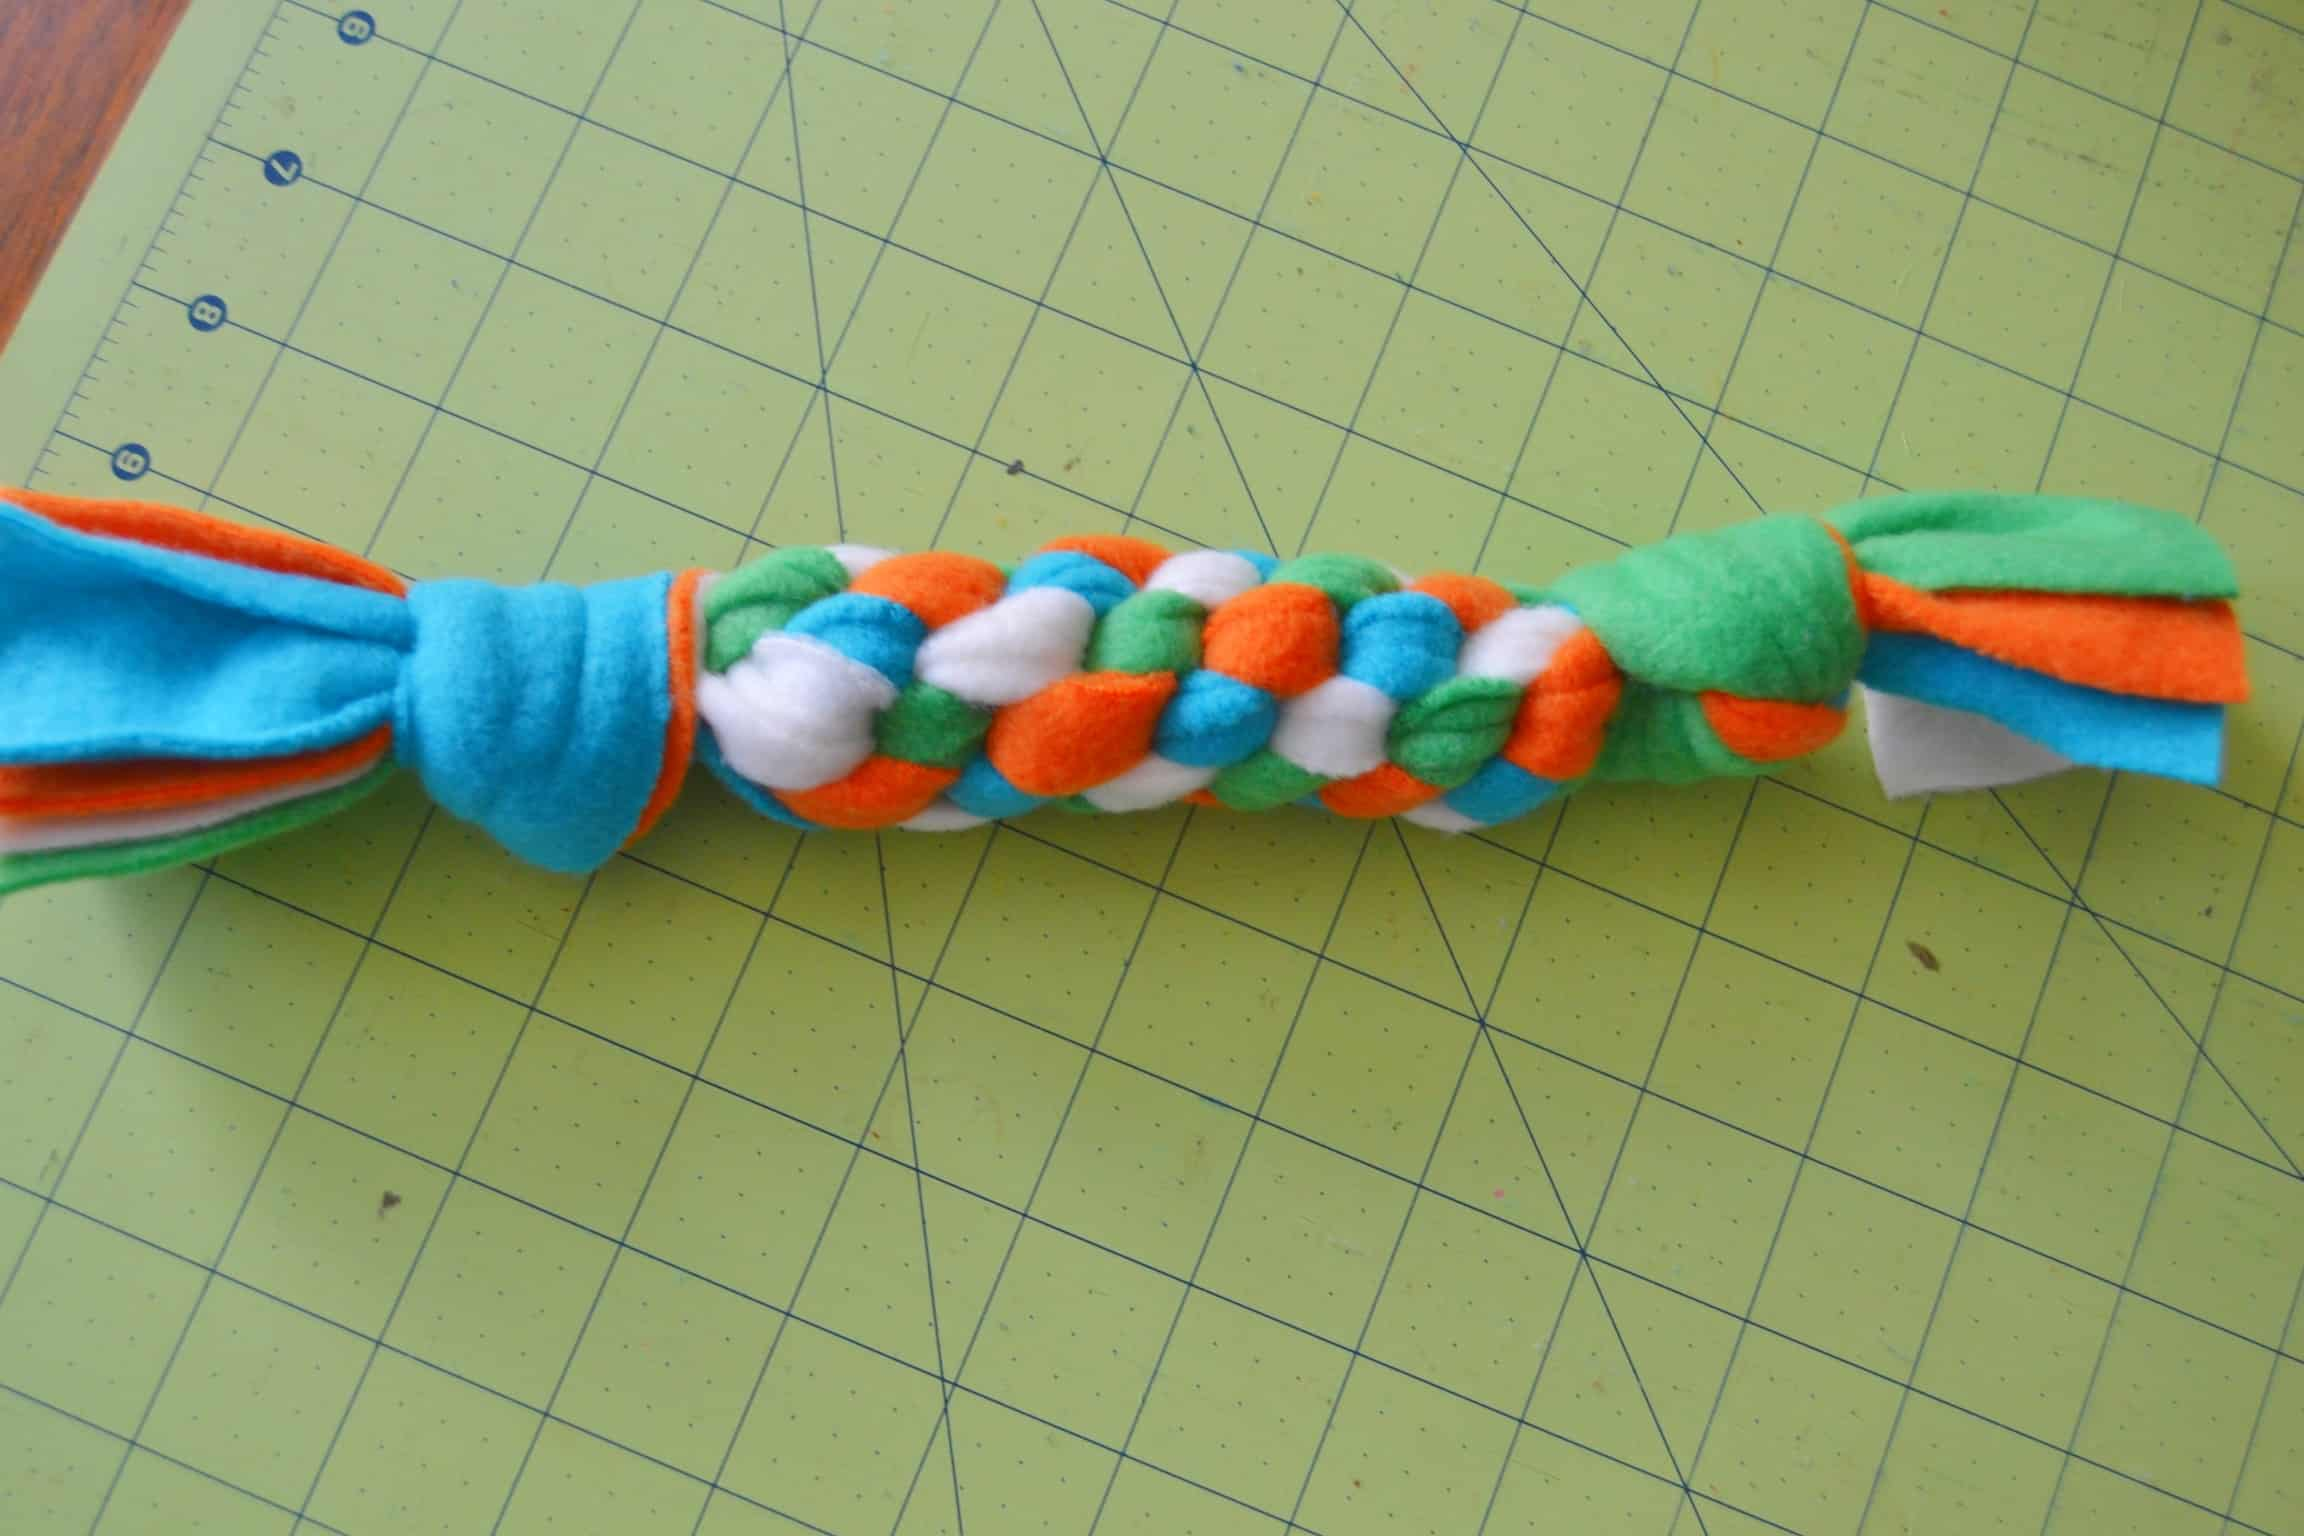 the dog toy finished and knotted off